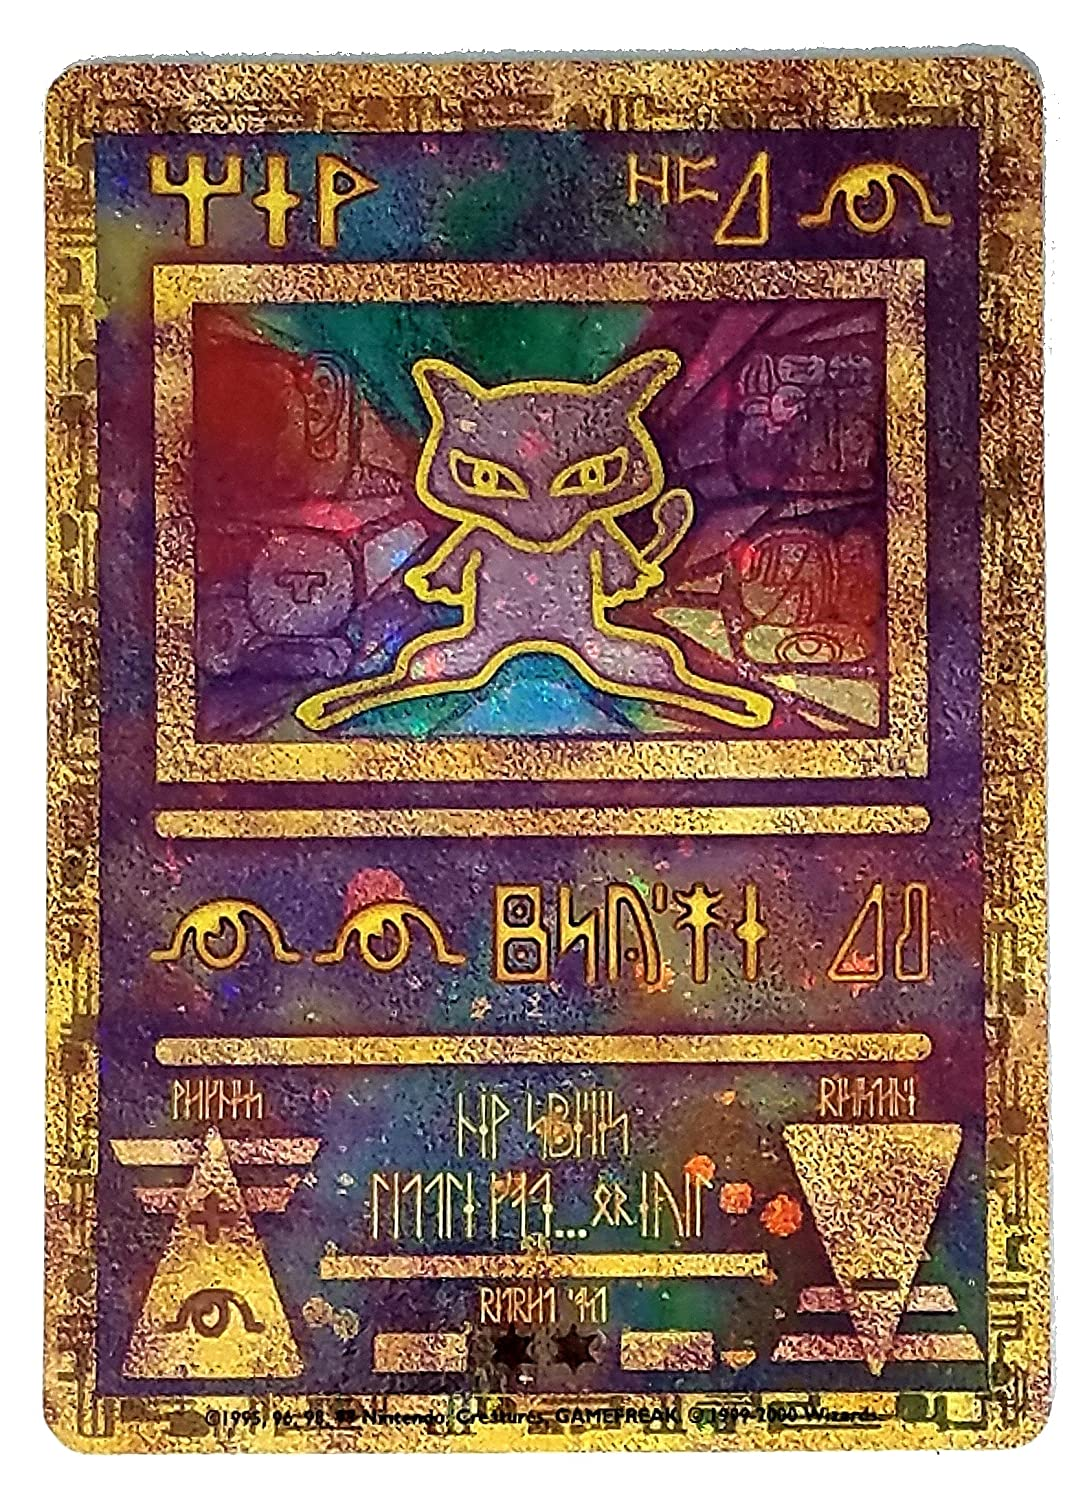 Mew Karte.Pokemon Single Card Promo Ancient Mew